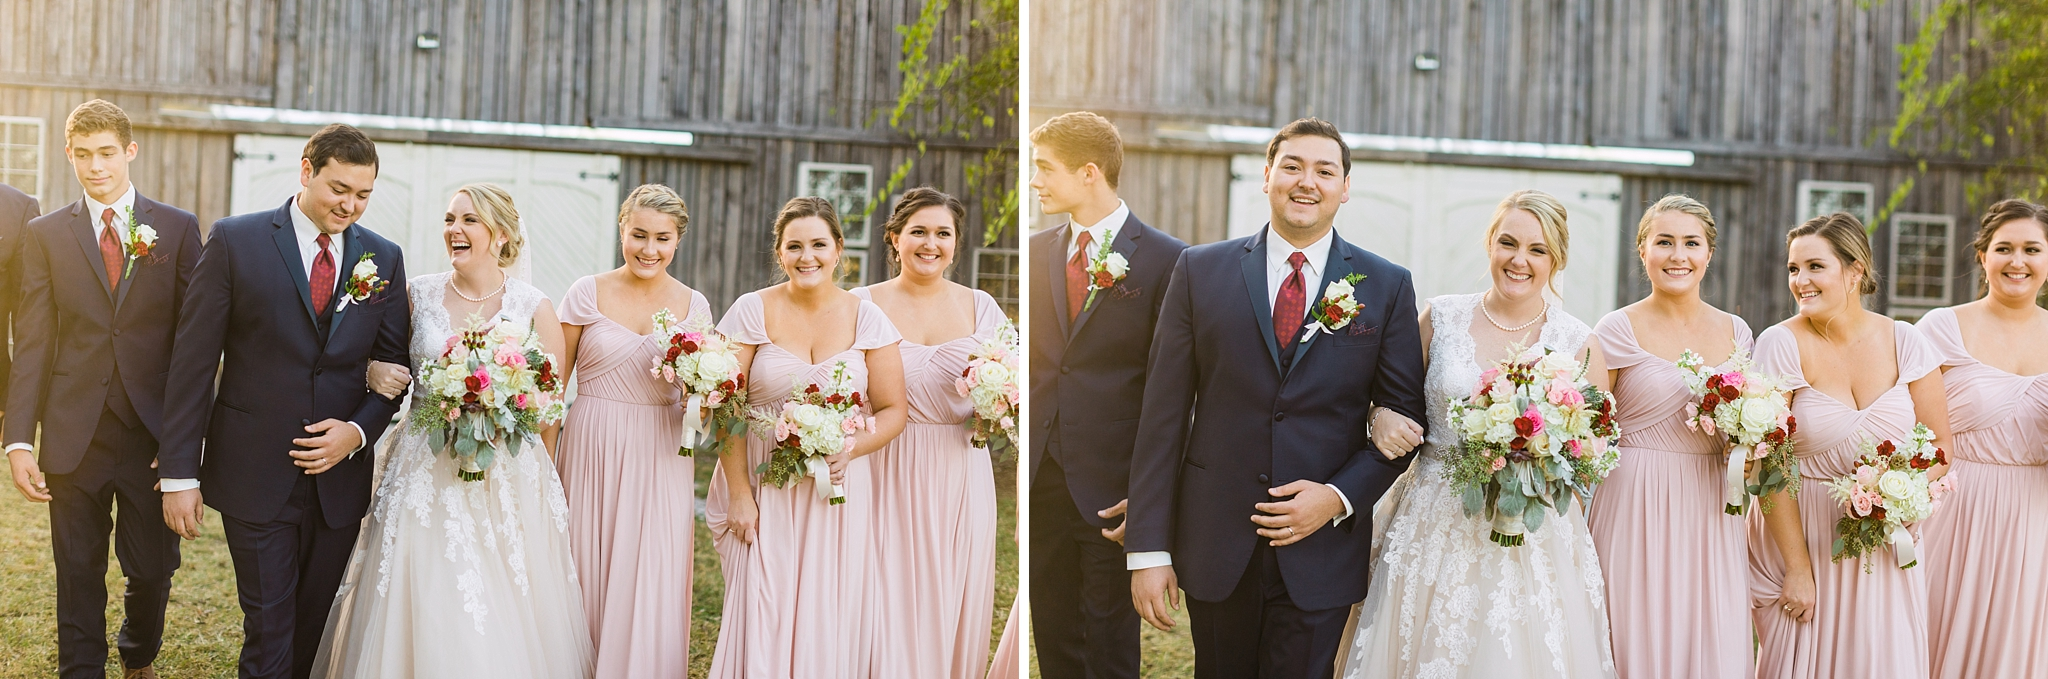 meadow-hill-farm-tn-wedding-photo.jpg